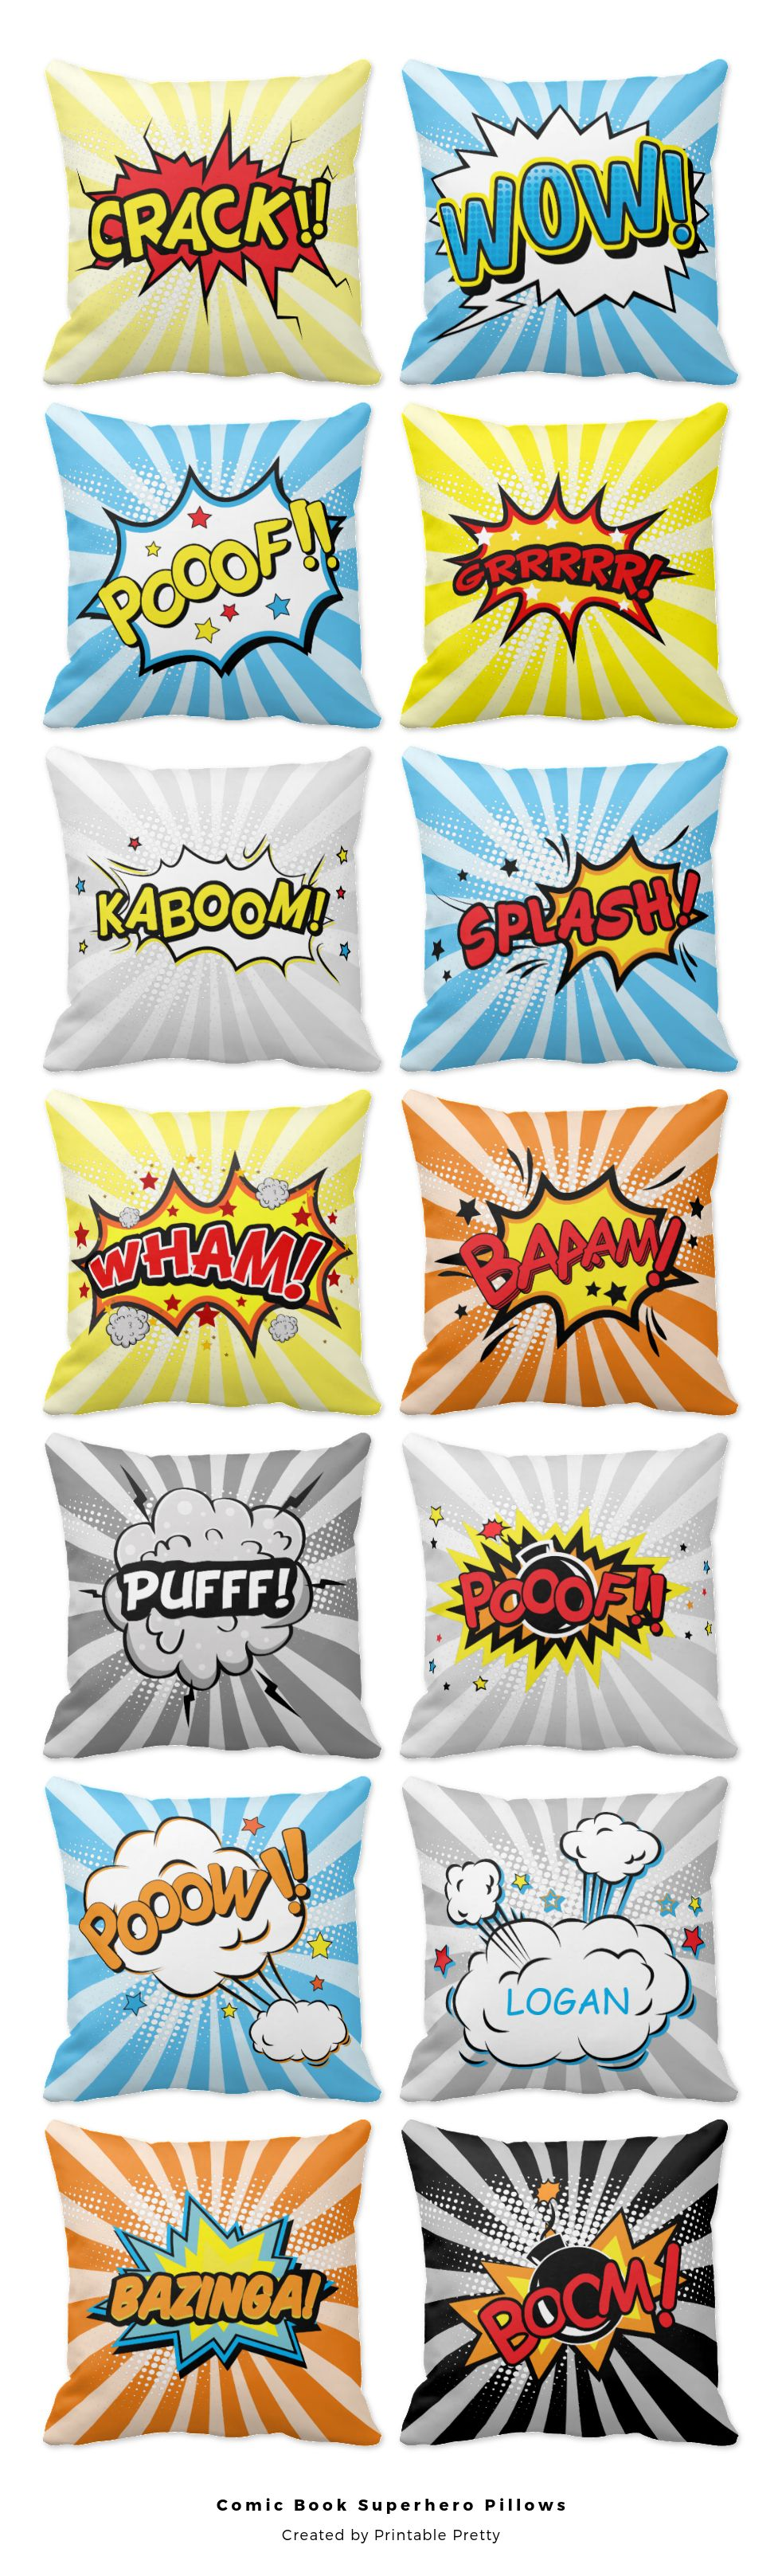 Adorable comic book super hero throw pillows with comic book sayings, halftone dots, and light rays. Super cute for a superhero kids bedroom! ♥ Pinnable image courtesy @ohsoprettypaper